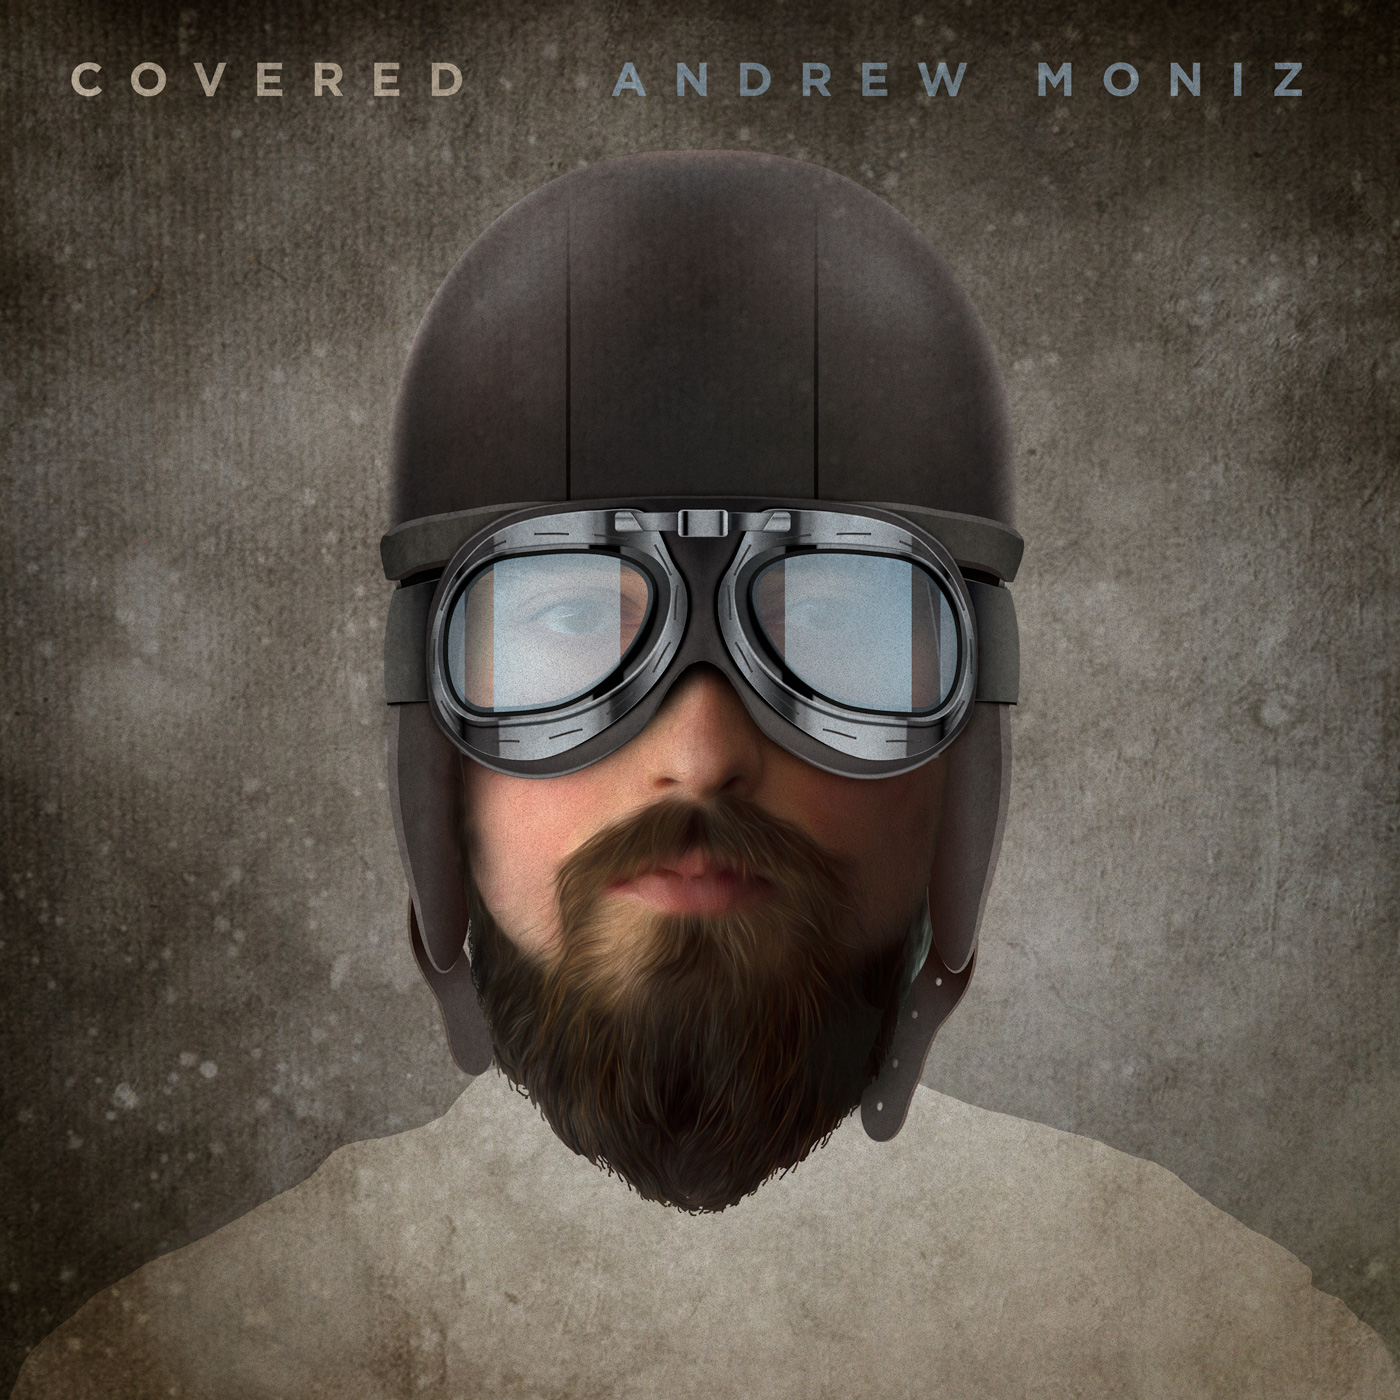 Covered by Andrew Moniz